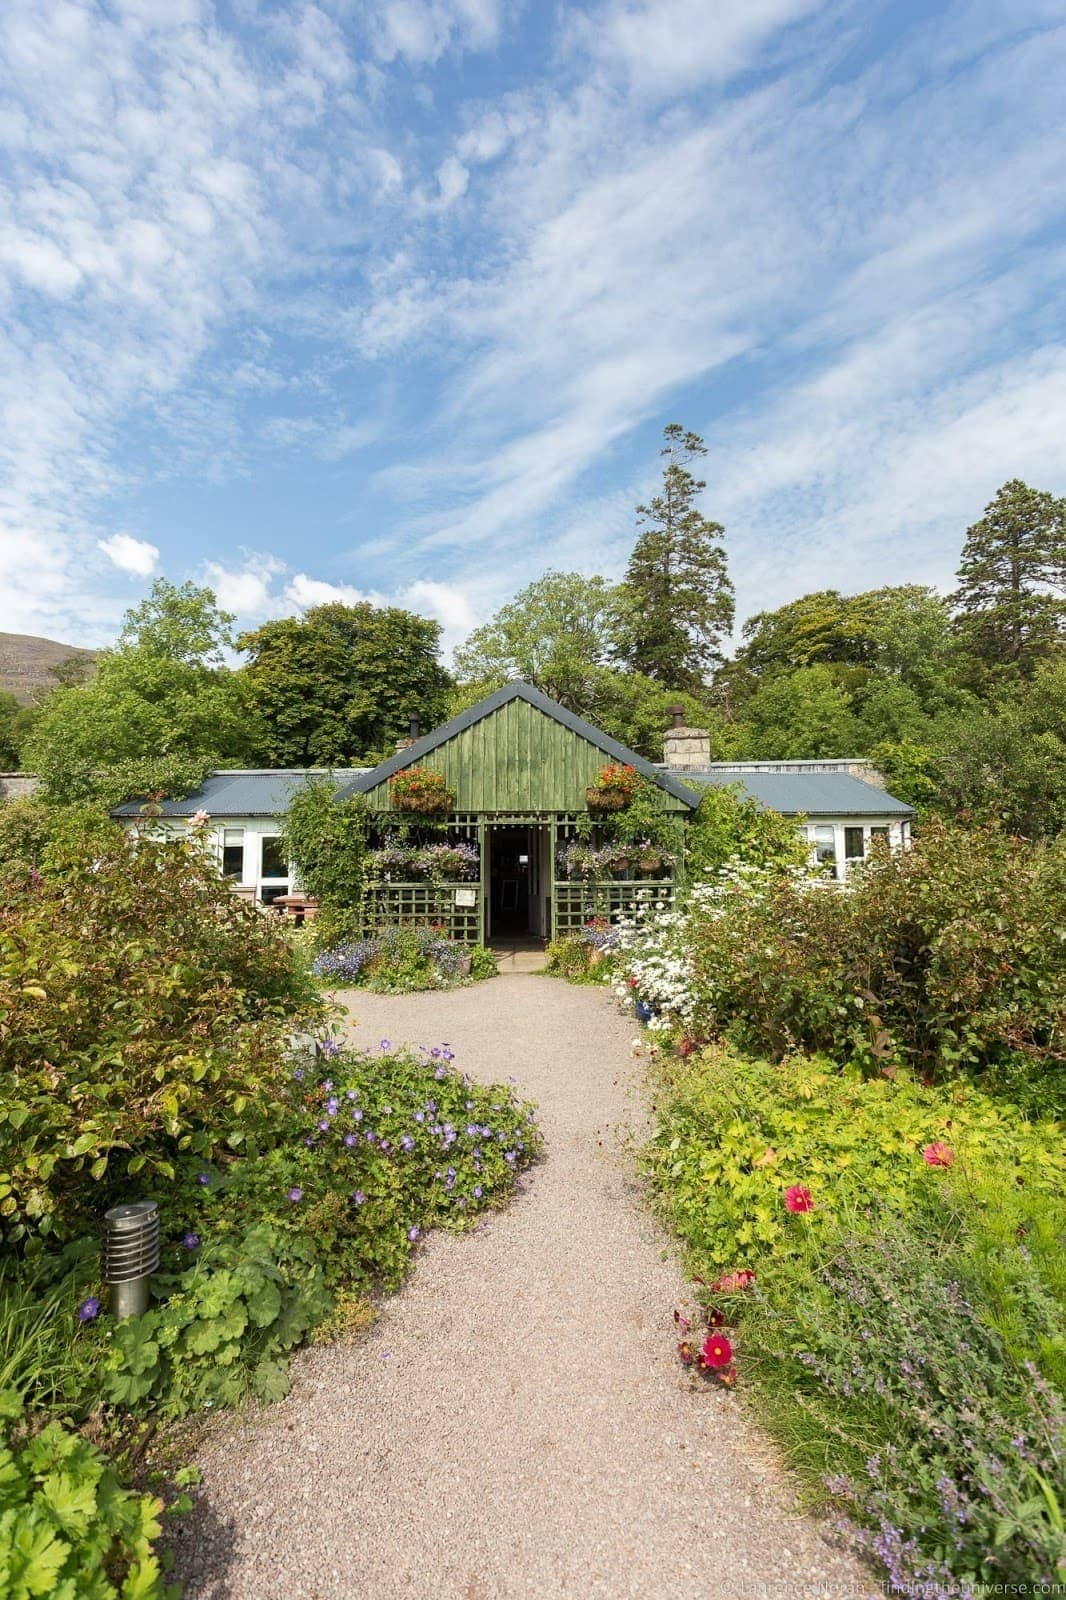 Potting Shed Cafe and Restaurant Applecross